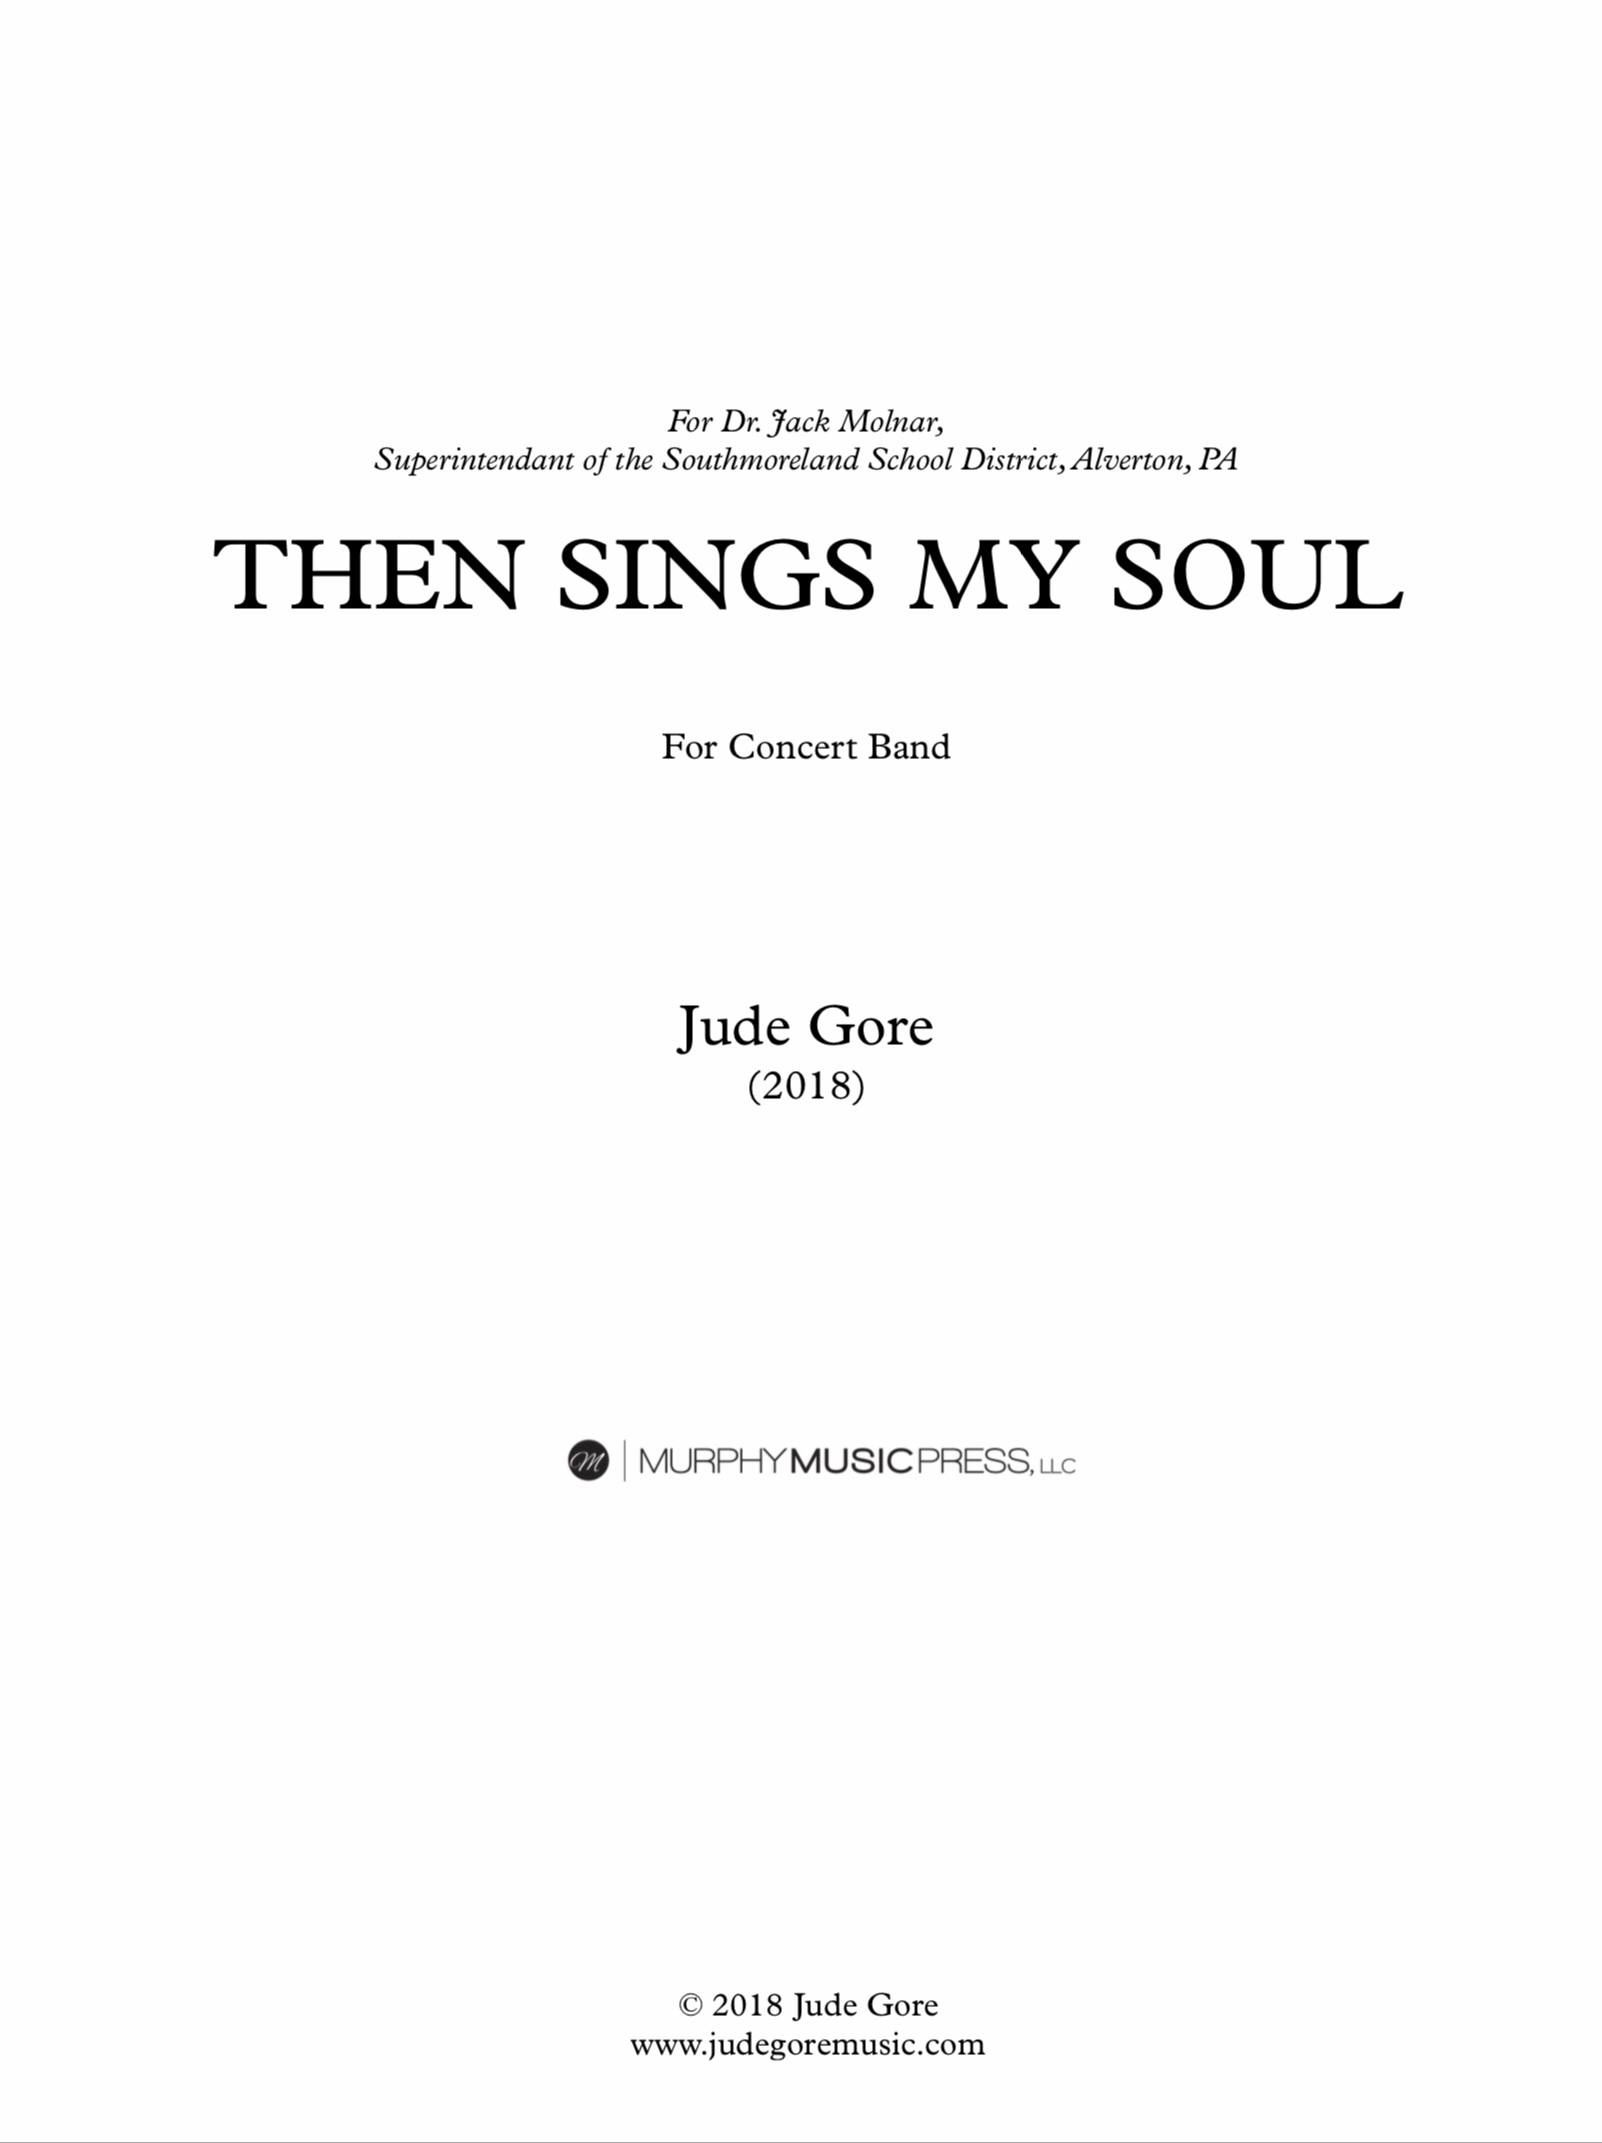 Then Sings My Soul by Jude Gore